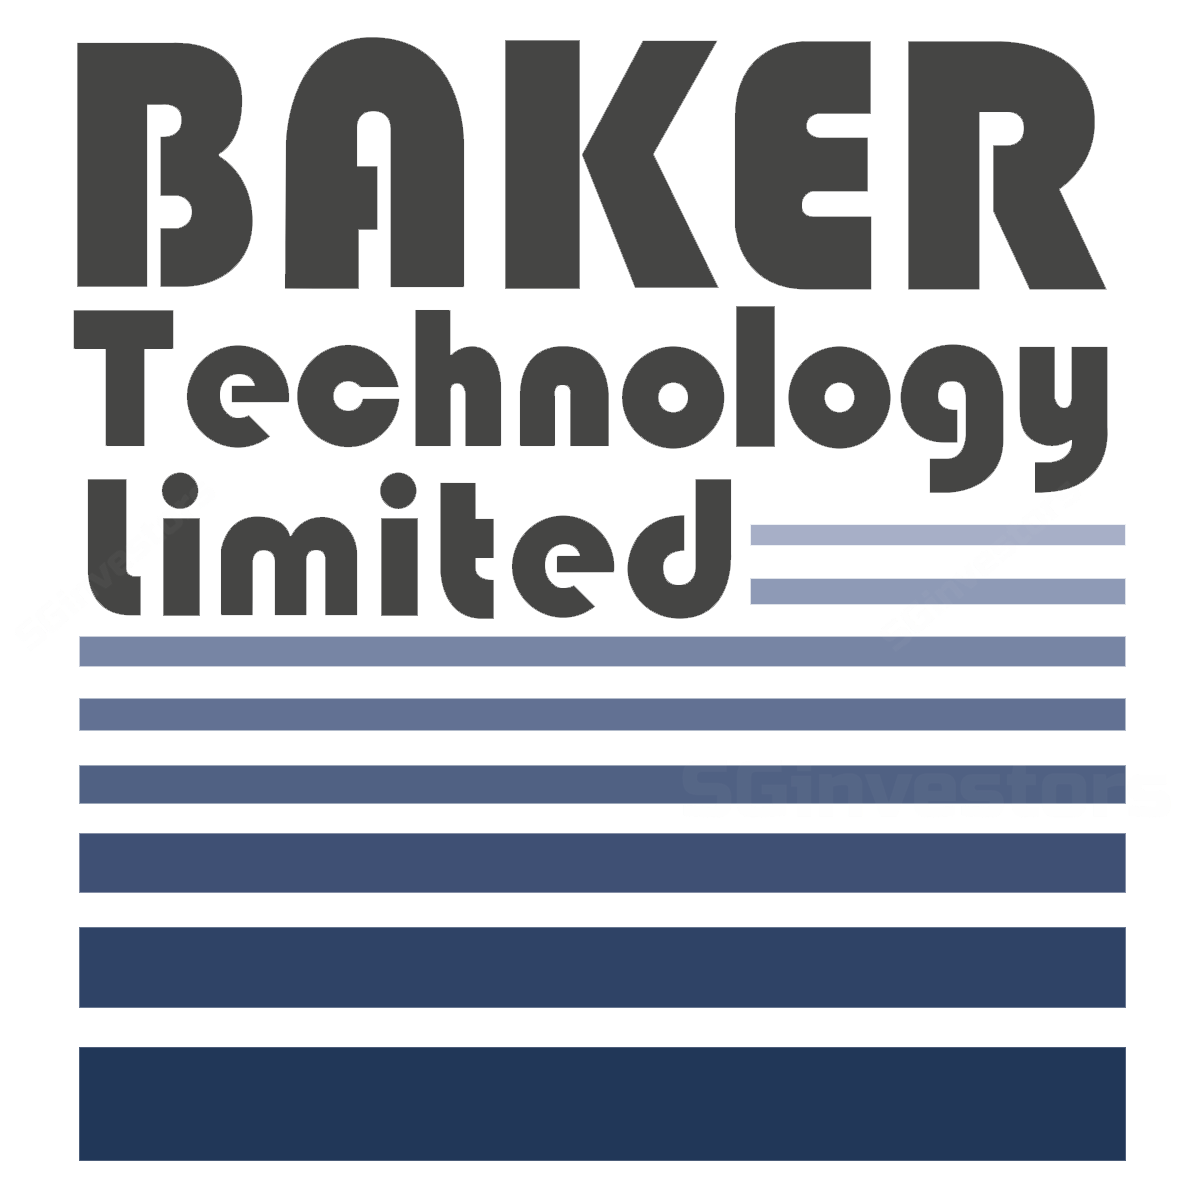 Baker Technology Limited - CIMB Research 2017-02-21: Cash rich, and with a new asset